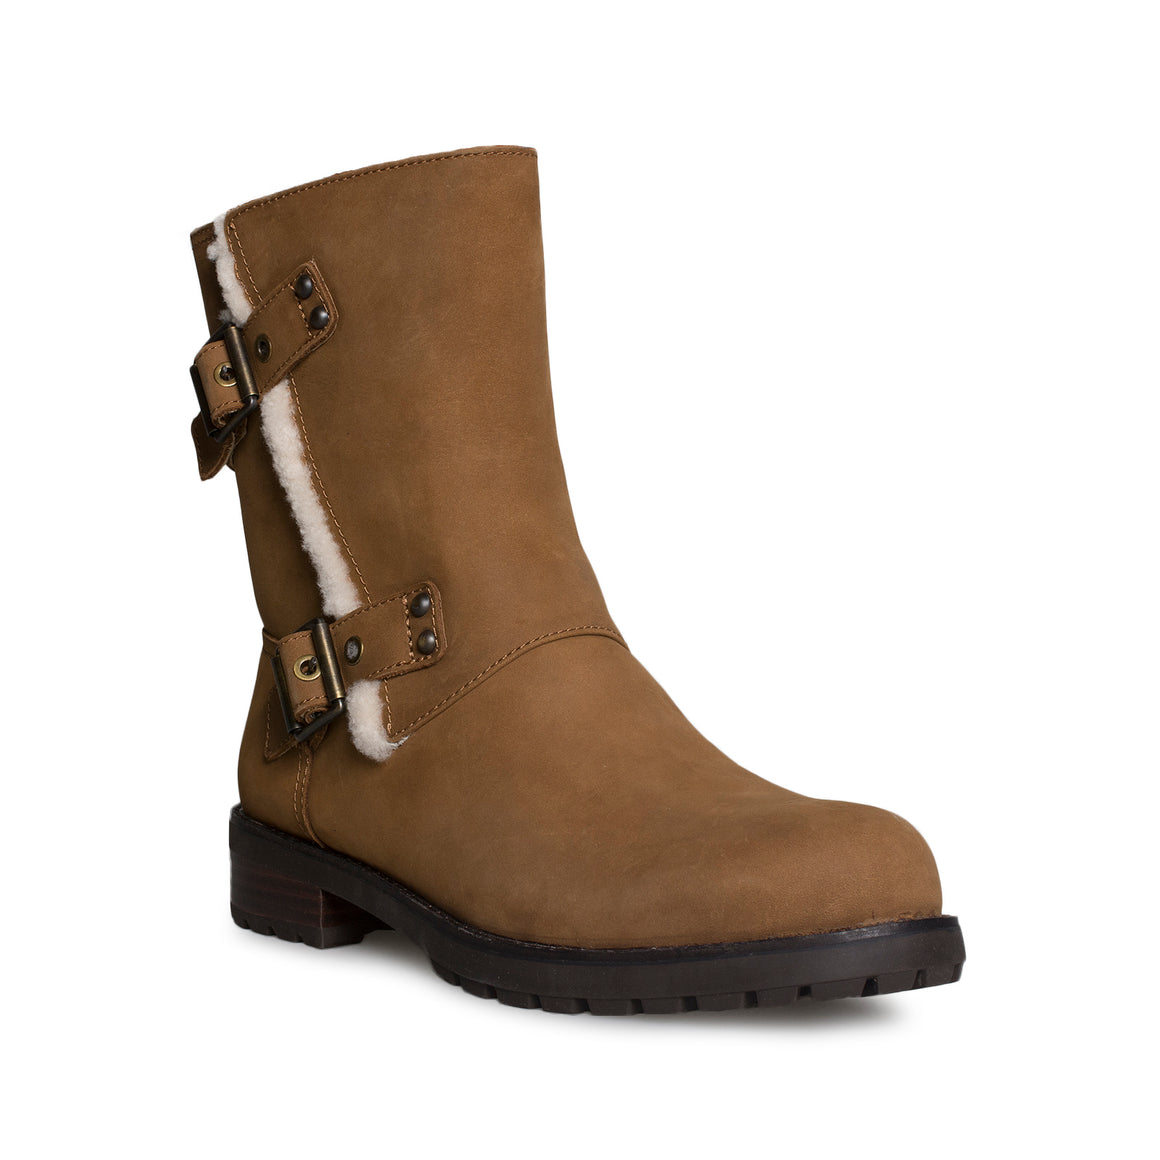 UGG Niels Chestnut Boots - Women's